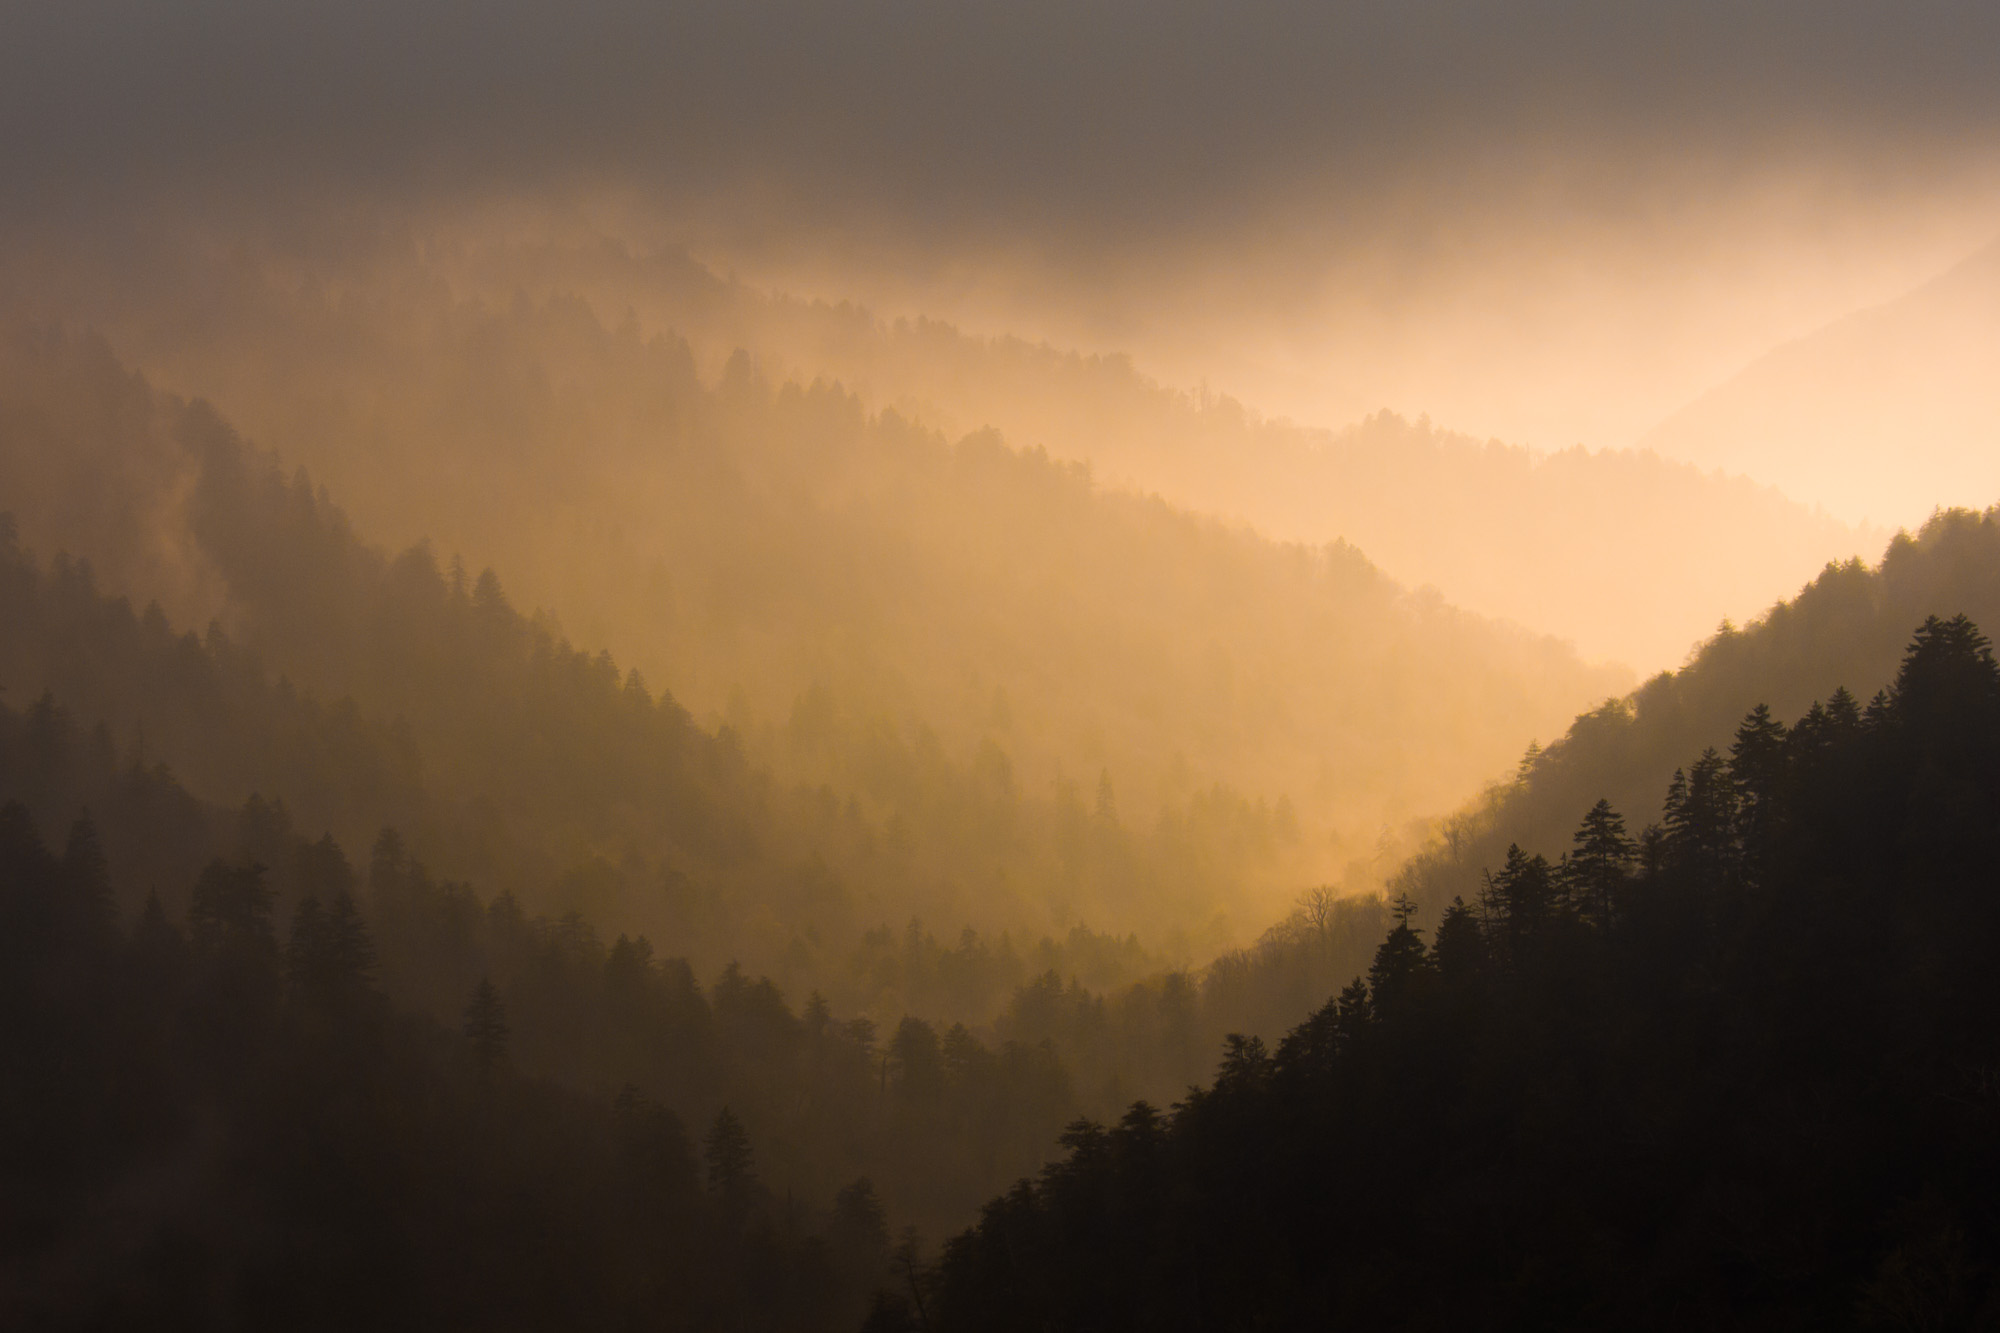 Misty Mountain Ridges, Great Smoky Mountains National Park, Tennessee/North Carolina